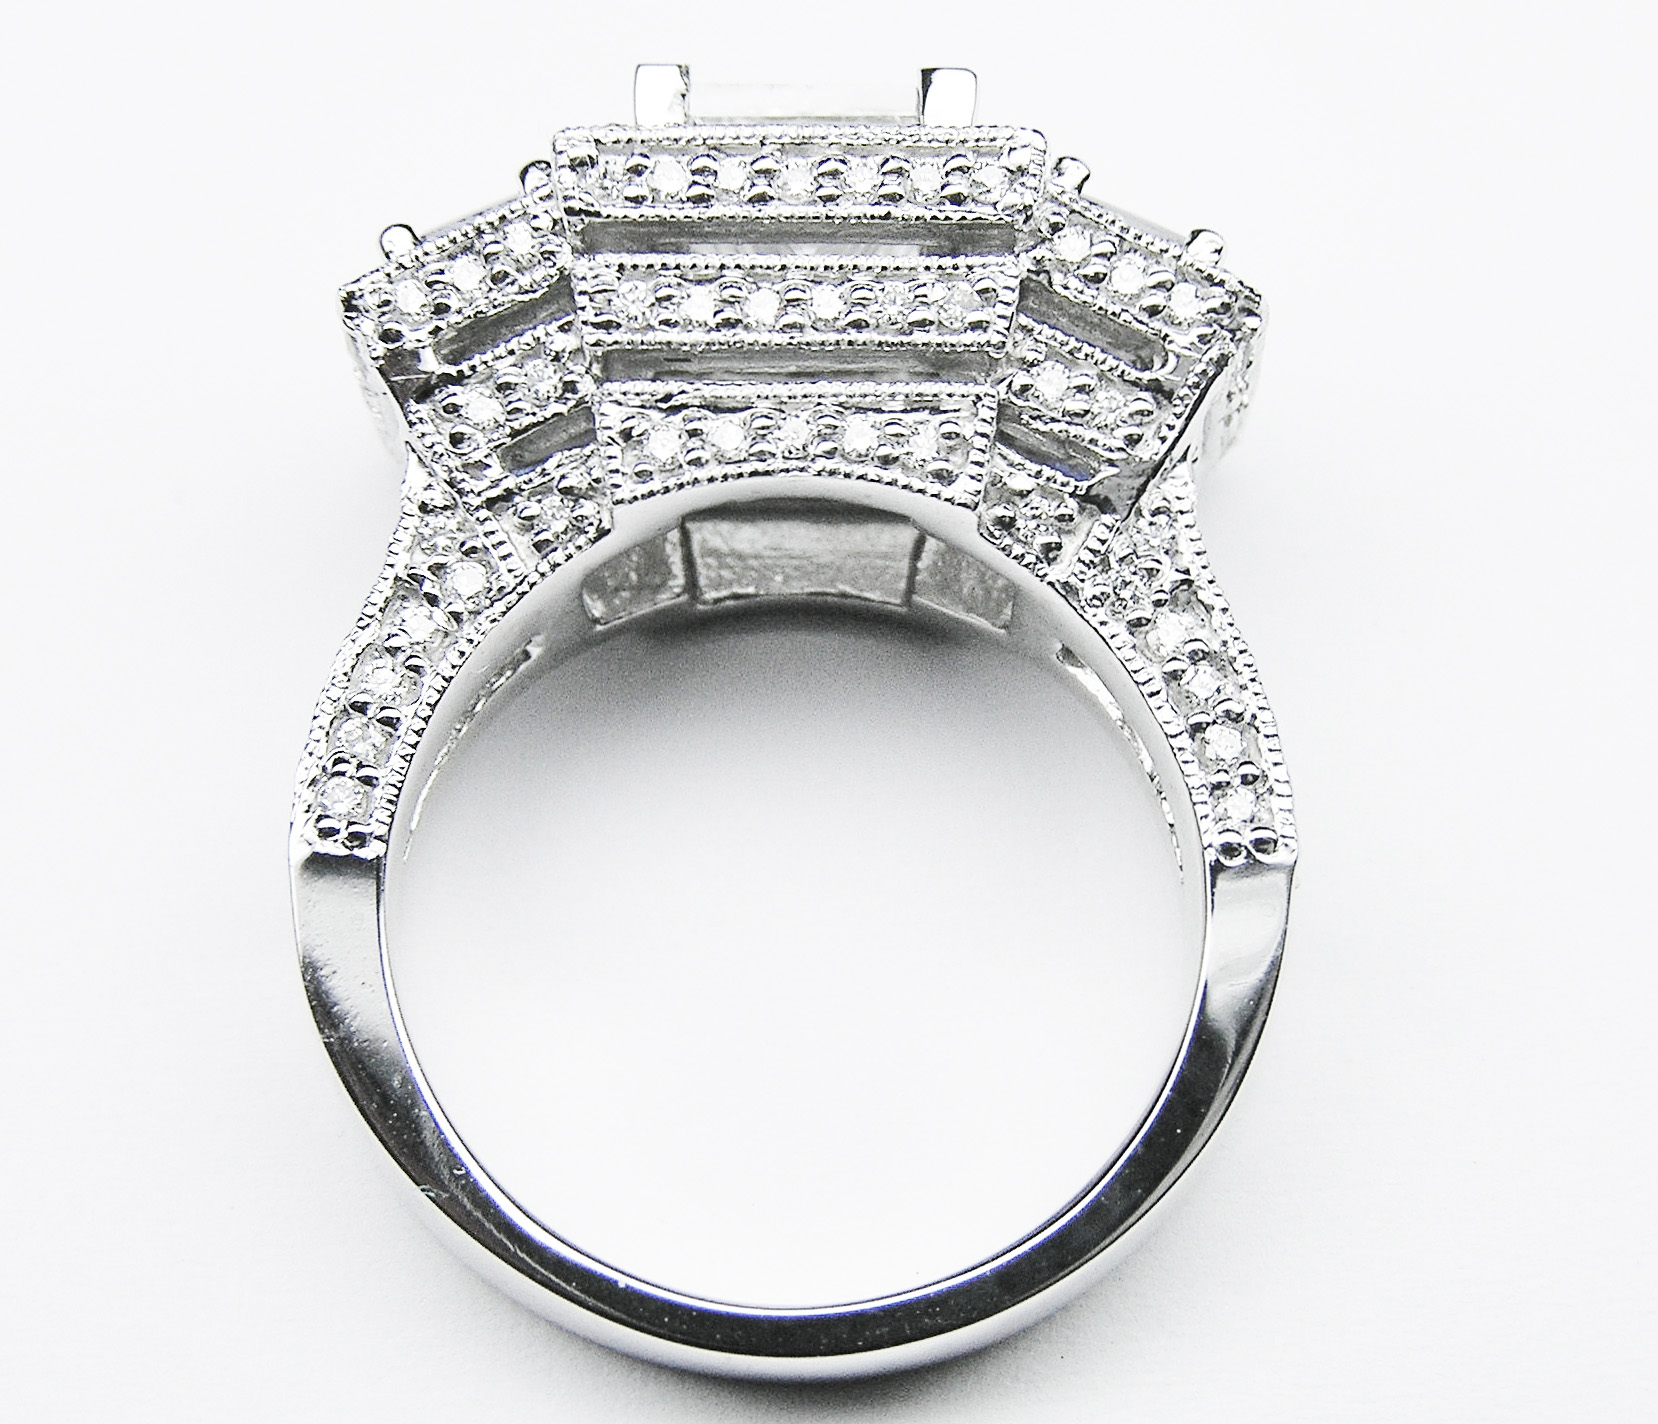 diamonds by not raymond diamond monzonite angle royalt fresh rings collection engagement tacori lee rd